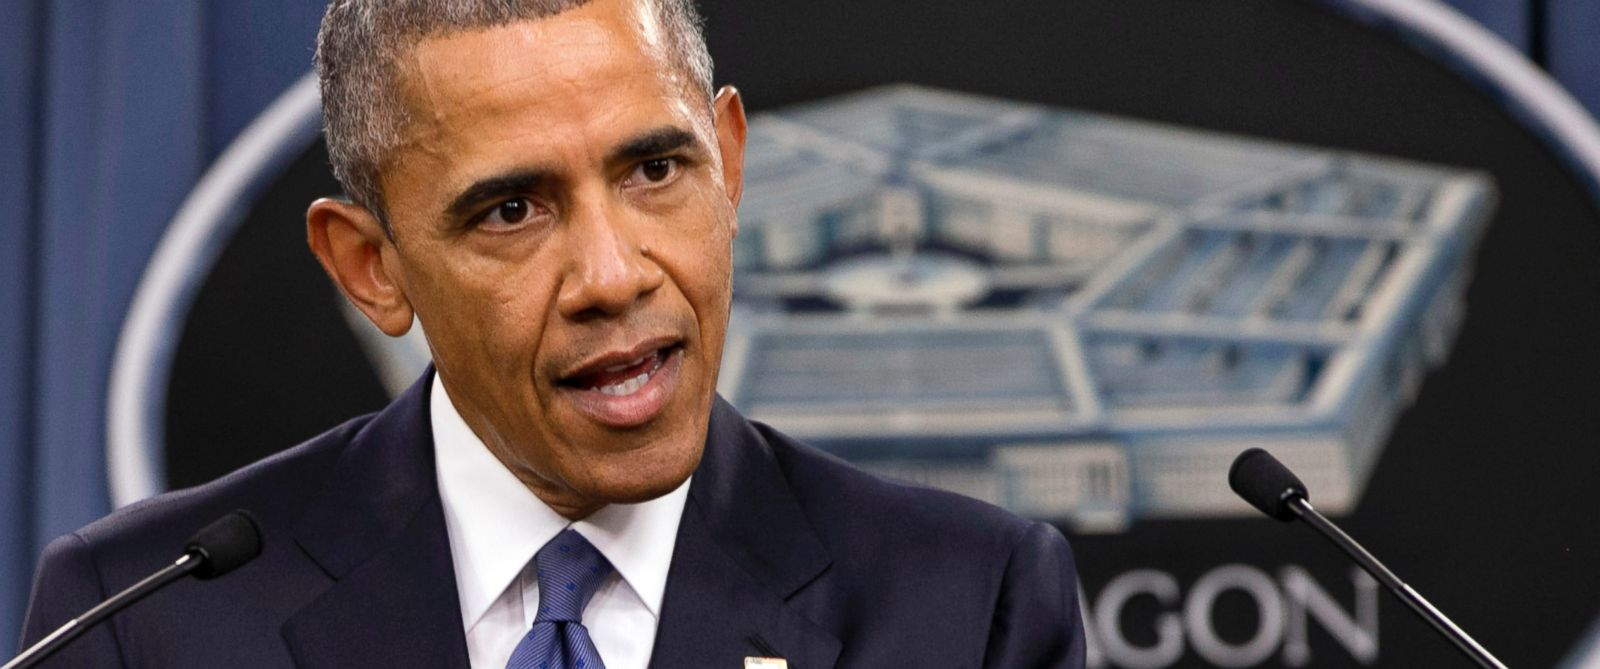 PHOTO: President Barack Obama speaks to the media after receiving an update from military leaders on the campaign against the Islamic State, during a rare visit to the Pentagon, July 6, 2015.